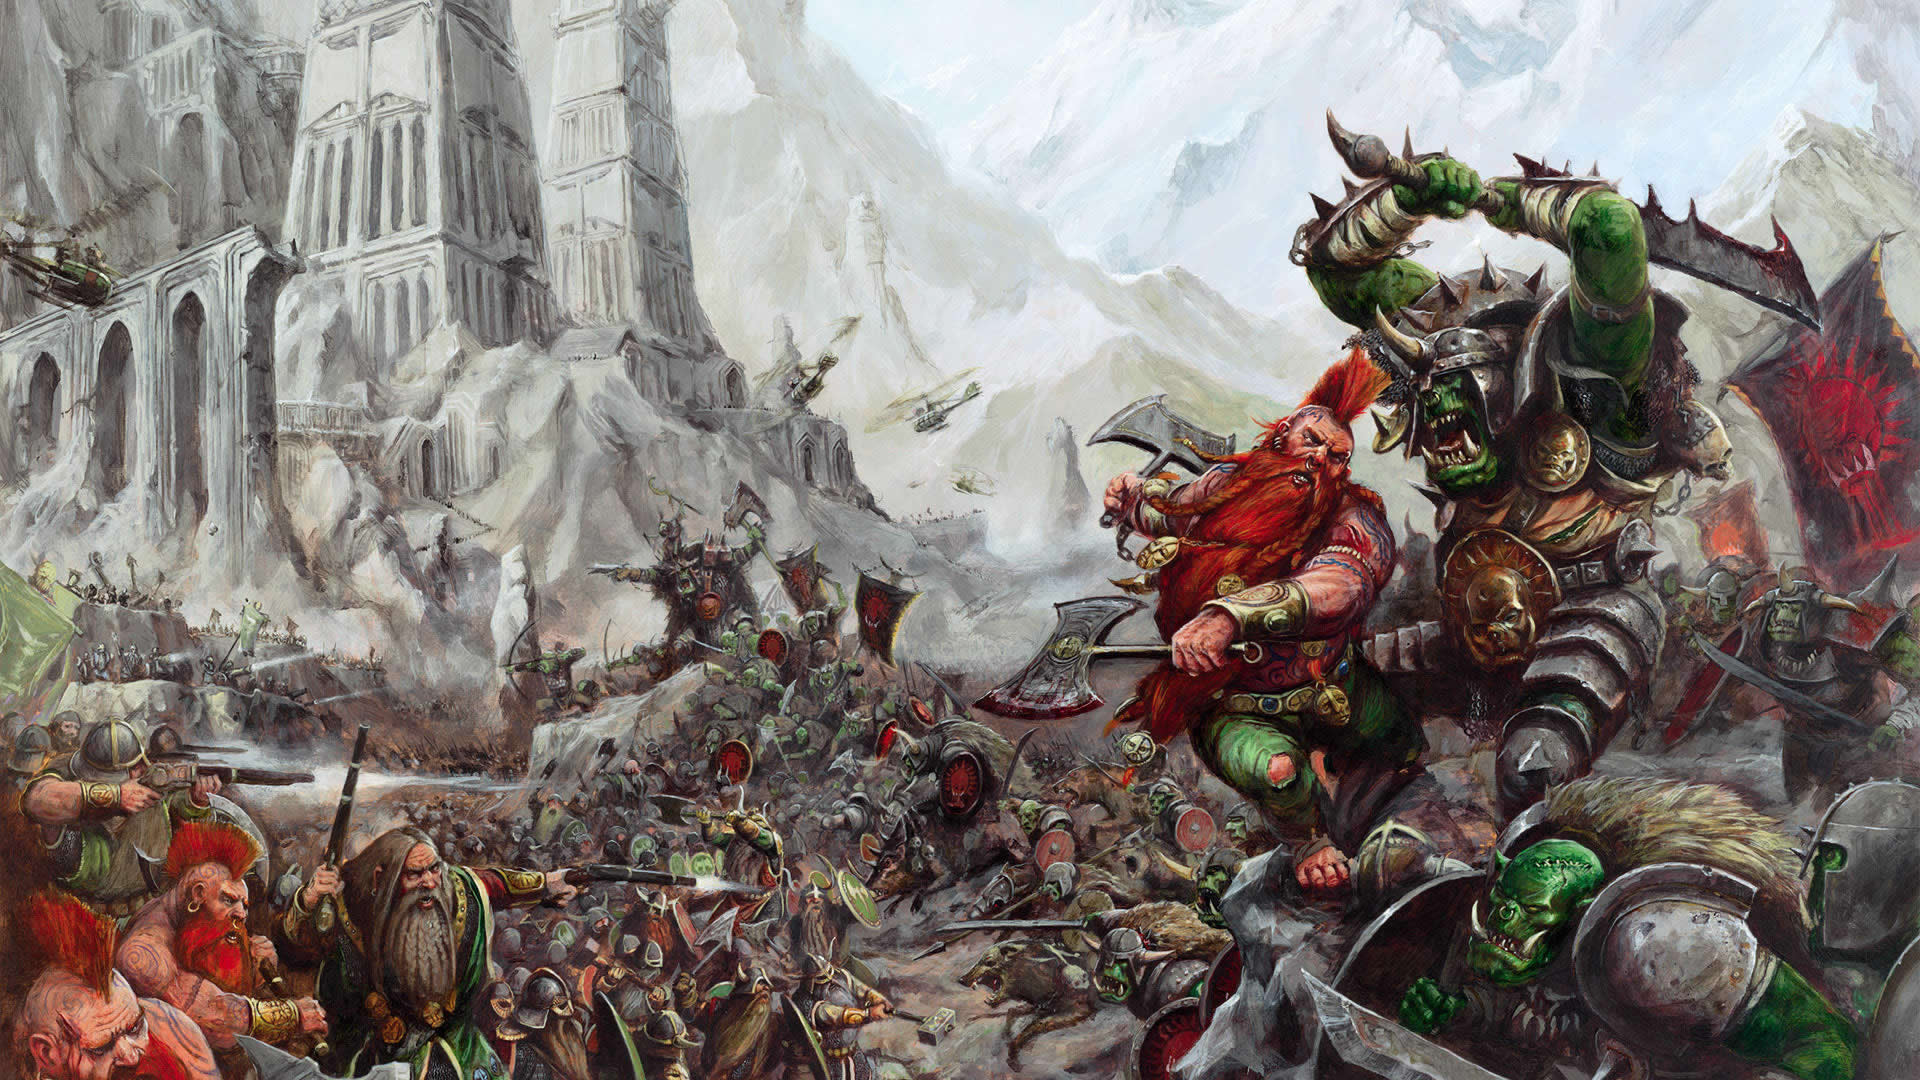 warhammer3 | coolvibe - digital artcoolvibe – digital art